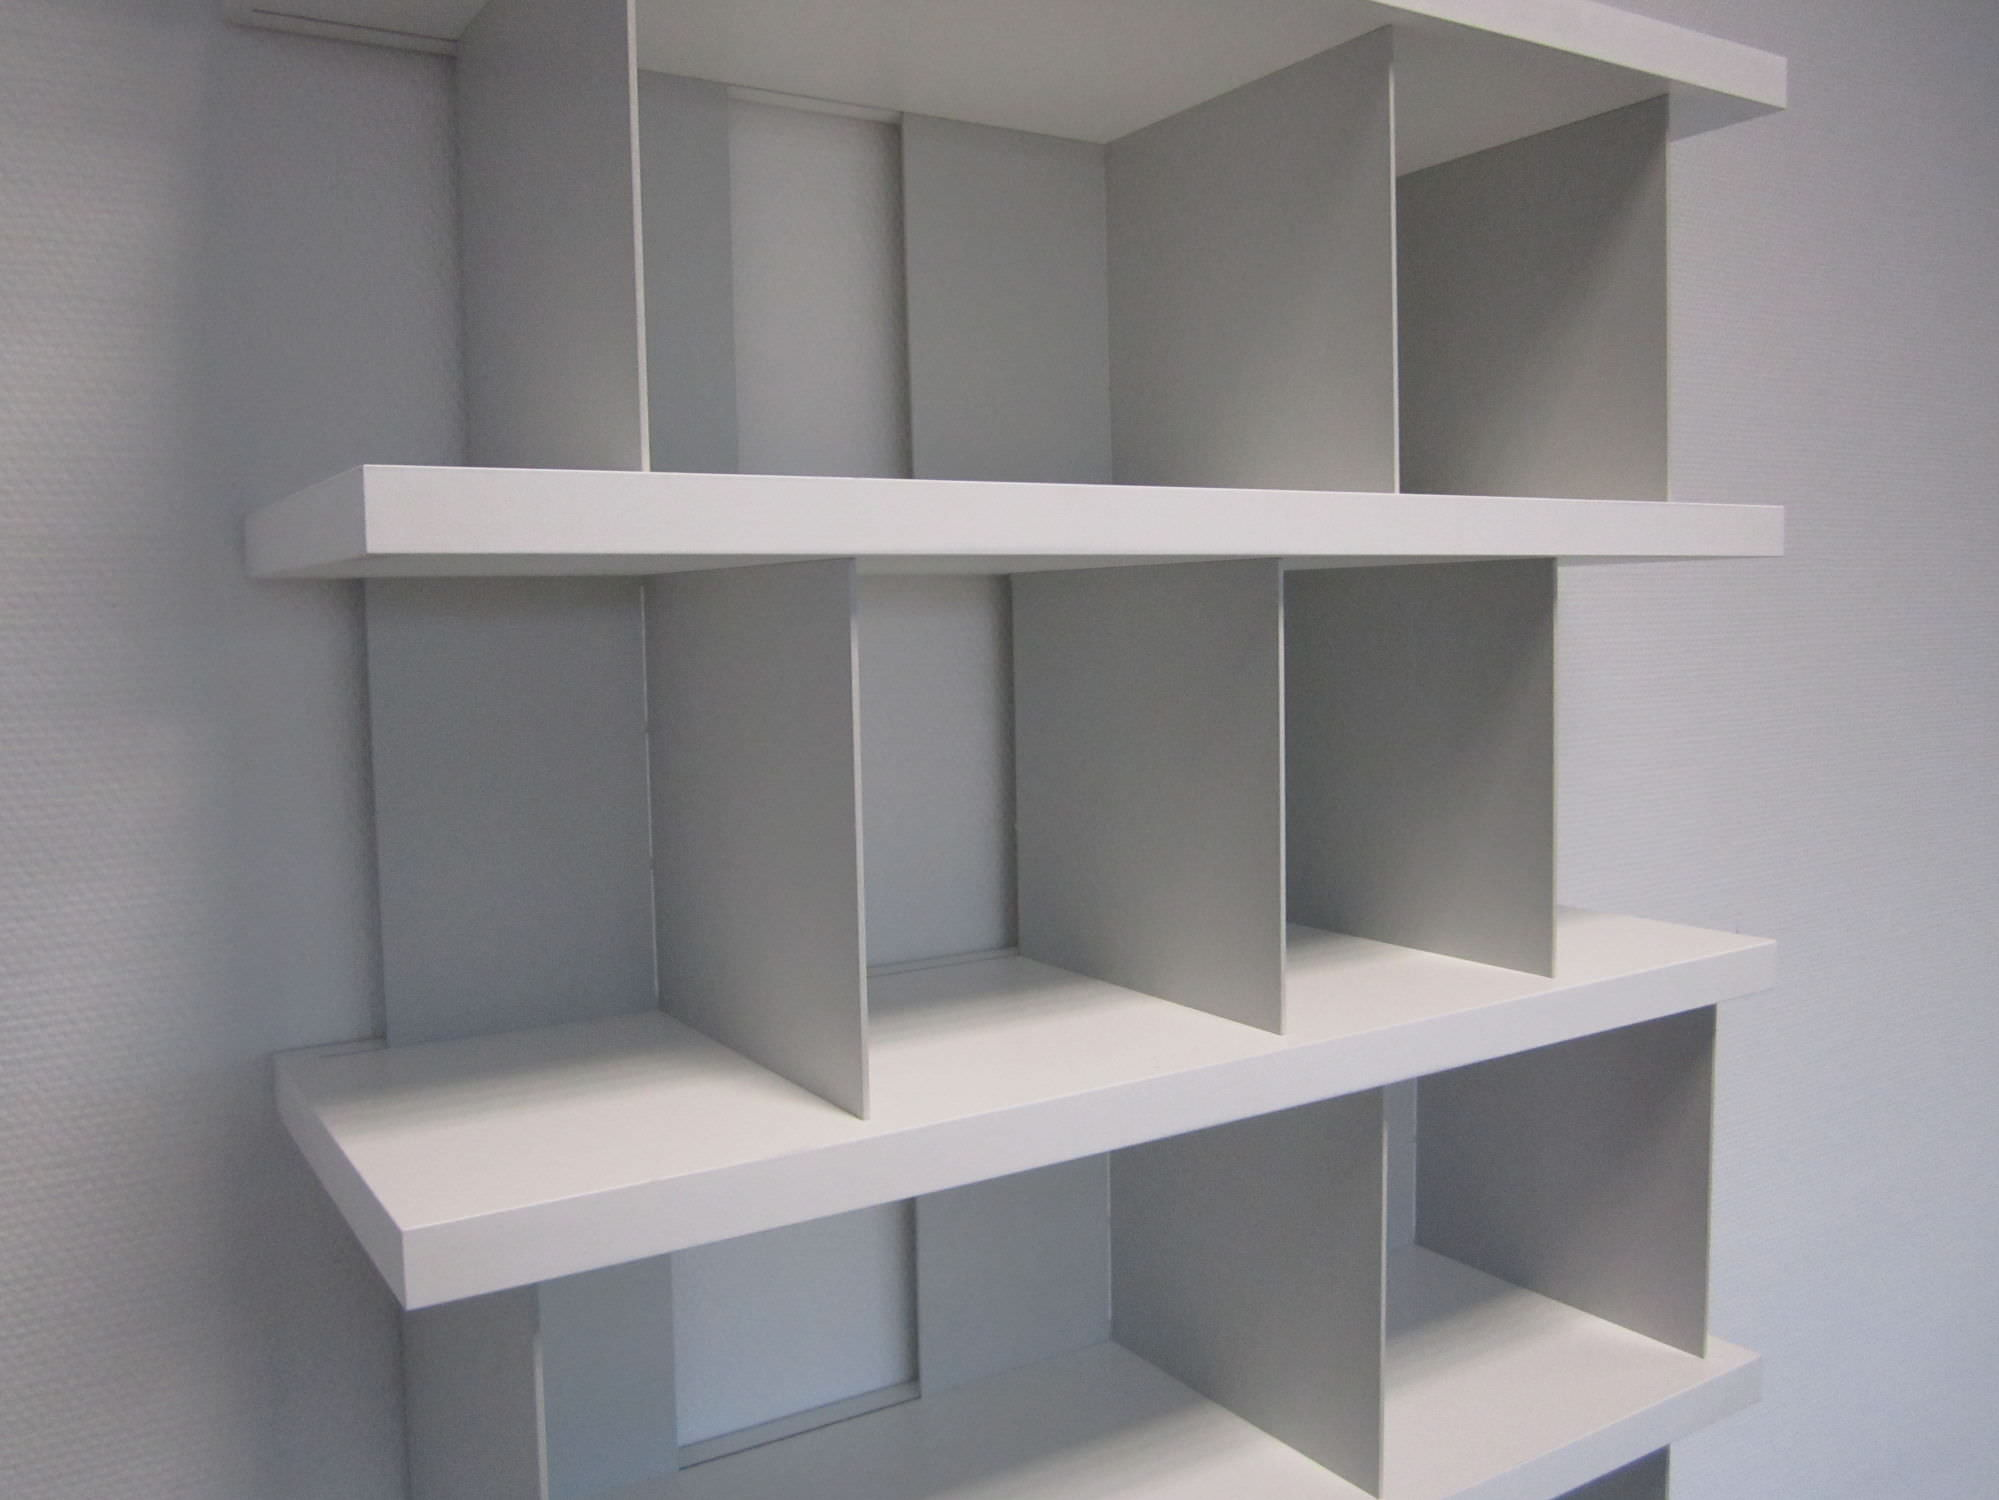 Bücherregal Modular Modular Shelf Contemporary Mdf Bieg By Eigenwert Tojo